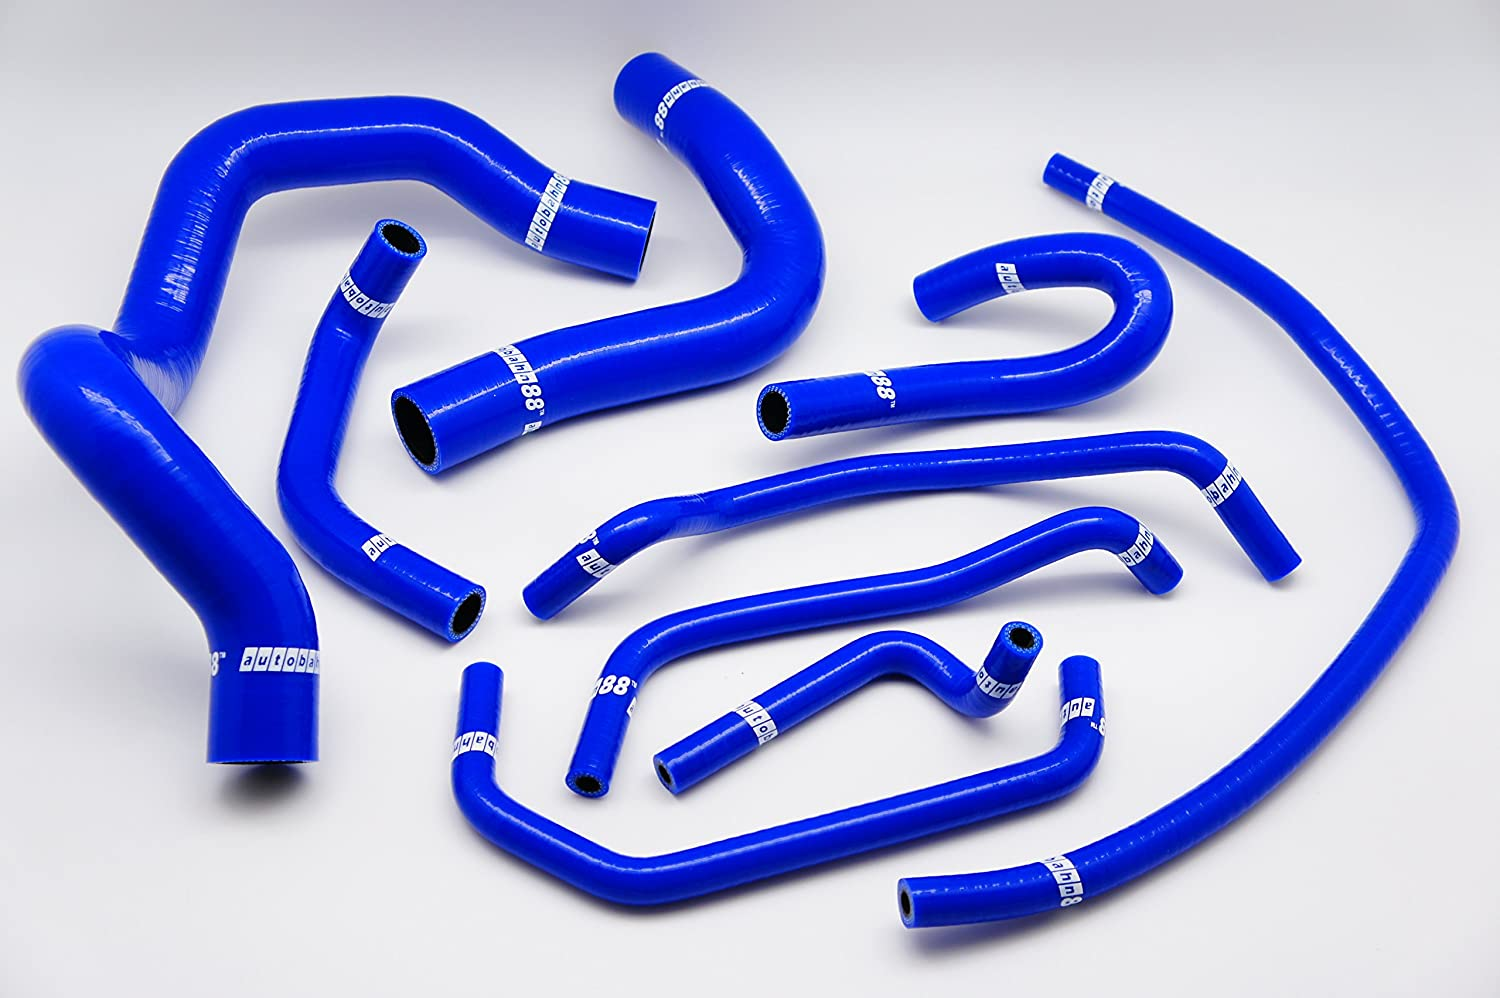 Blue -with Clamp Set Autobahn88 Radiator Coolant /& Heater Silicone Hose Kit for 2003-2012 Mazda RX8 SE3P 13B MSP